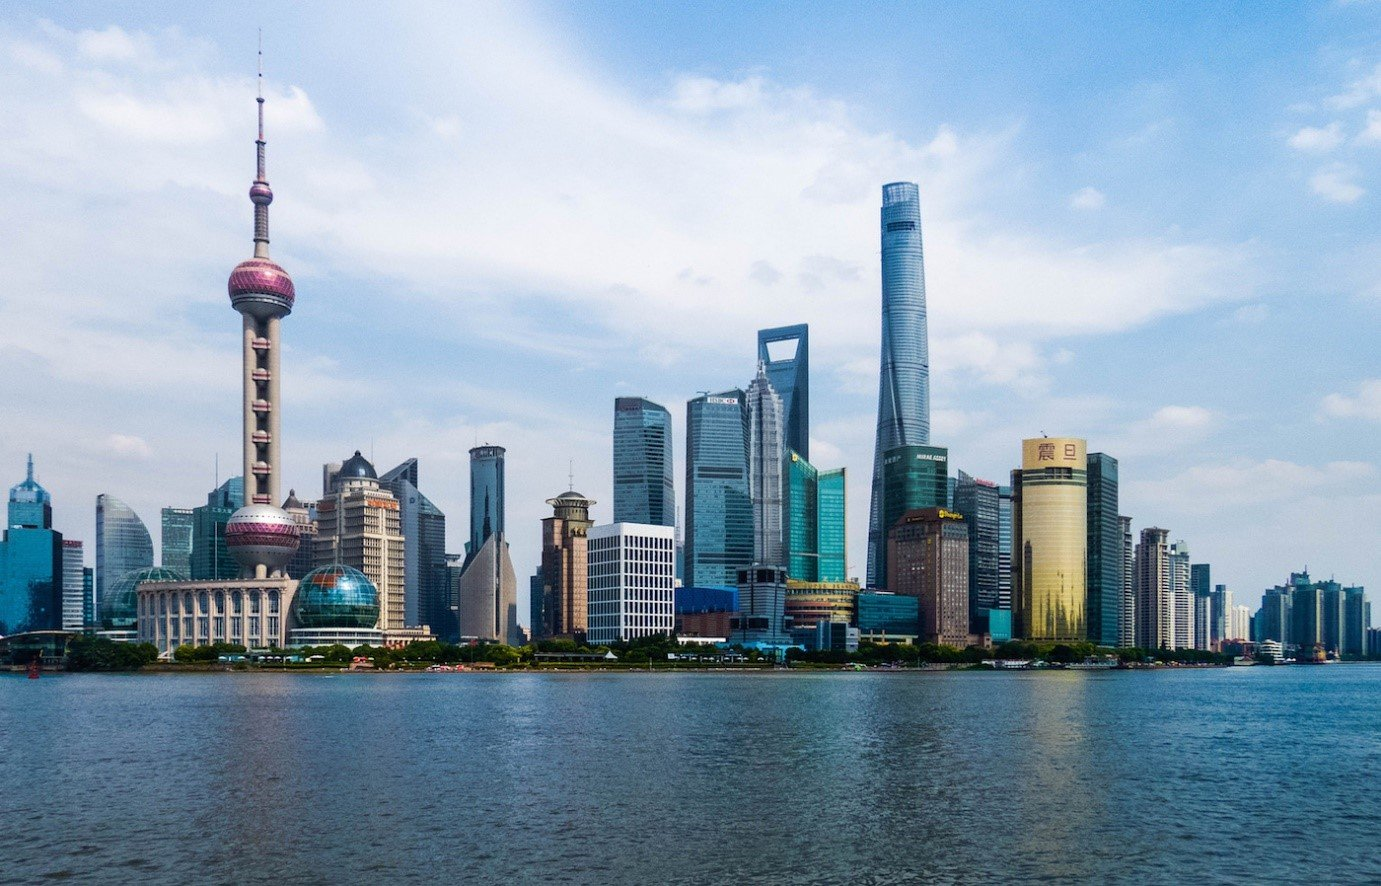 ipushpull to be part of the Lord Mayor's FinTech delegation to China